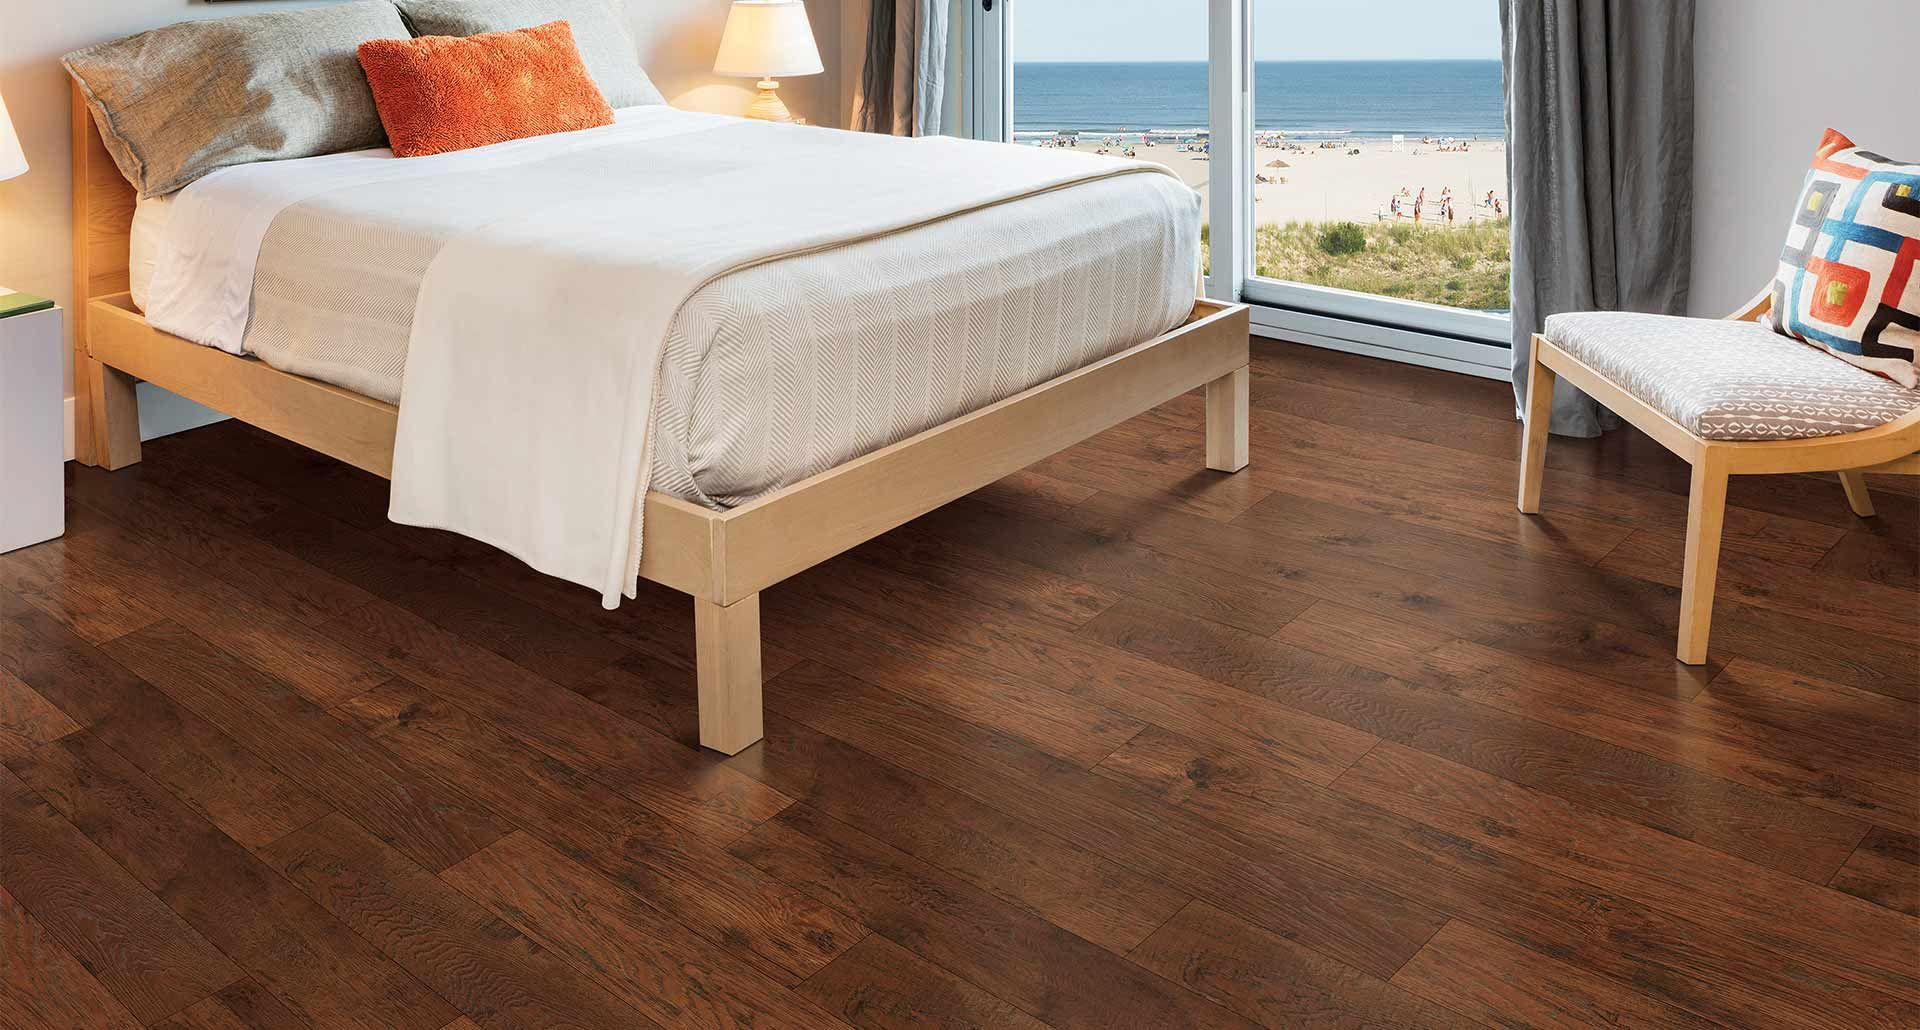 A twist on a classic hickory with contrasting rich, auburn colors, Pergo's  Colorado Hickory